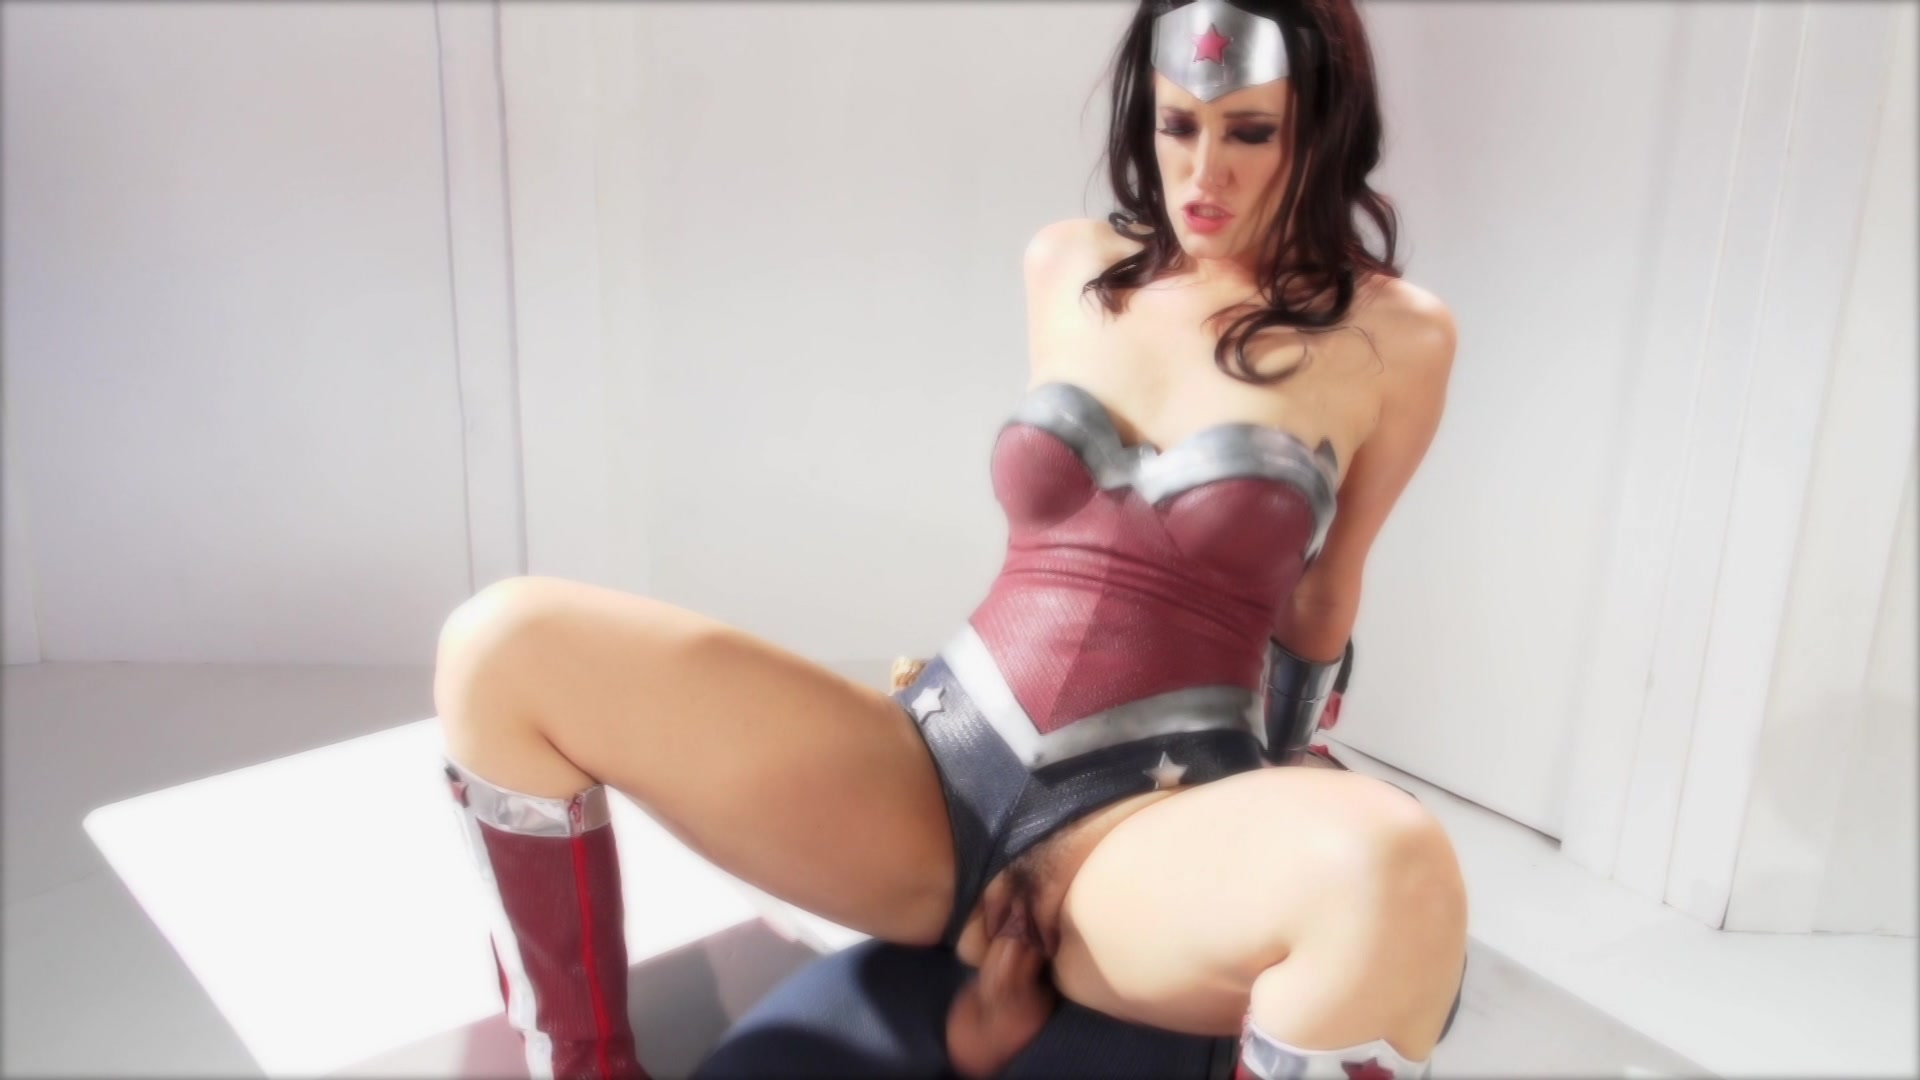 Sexy Wonder Woman Porn